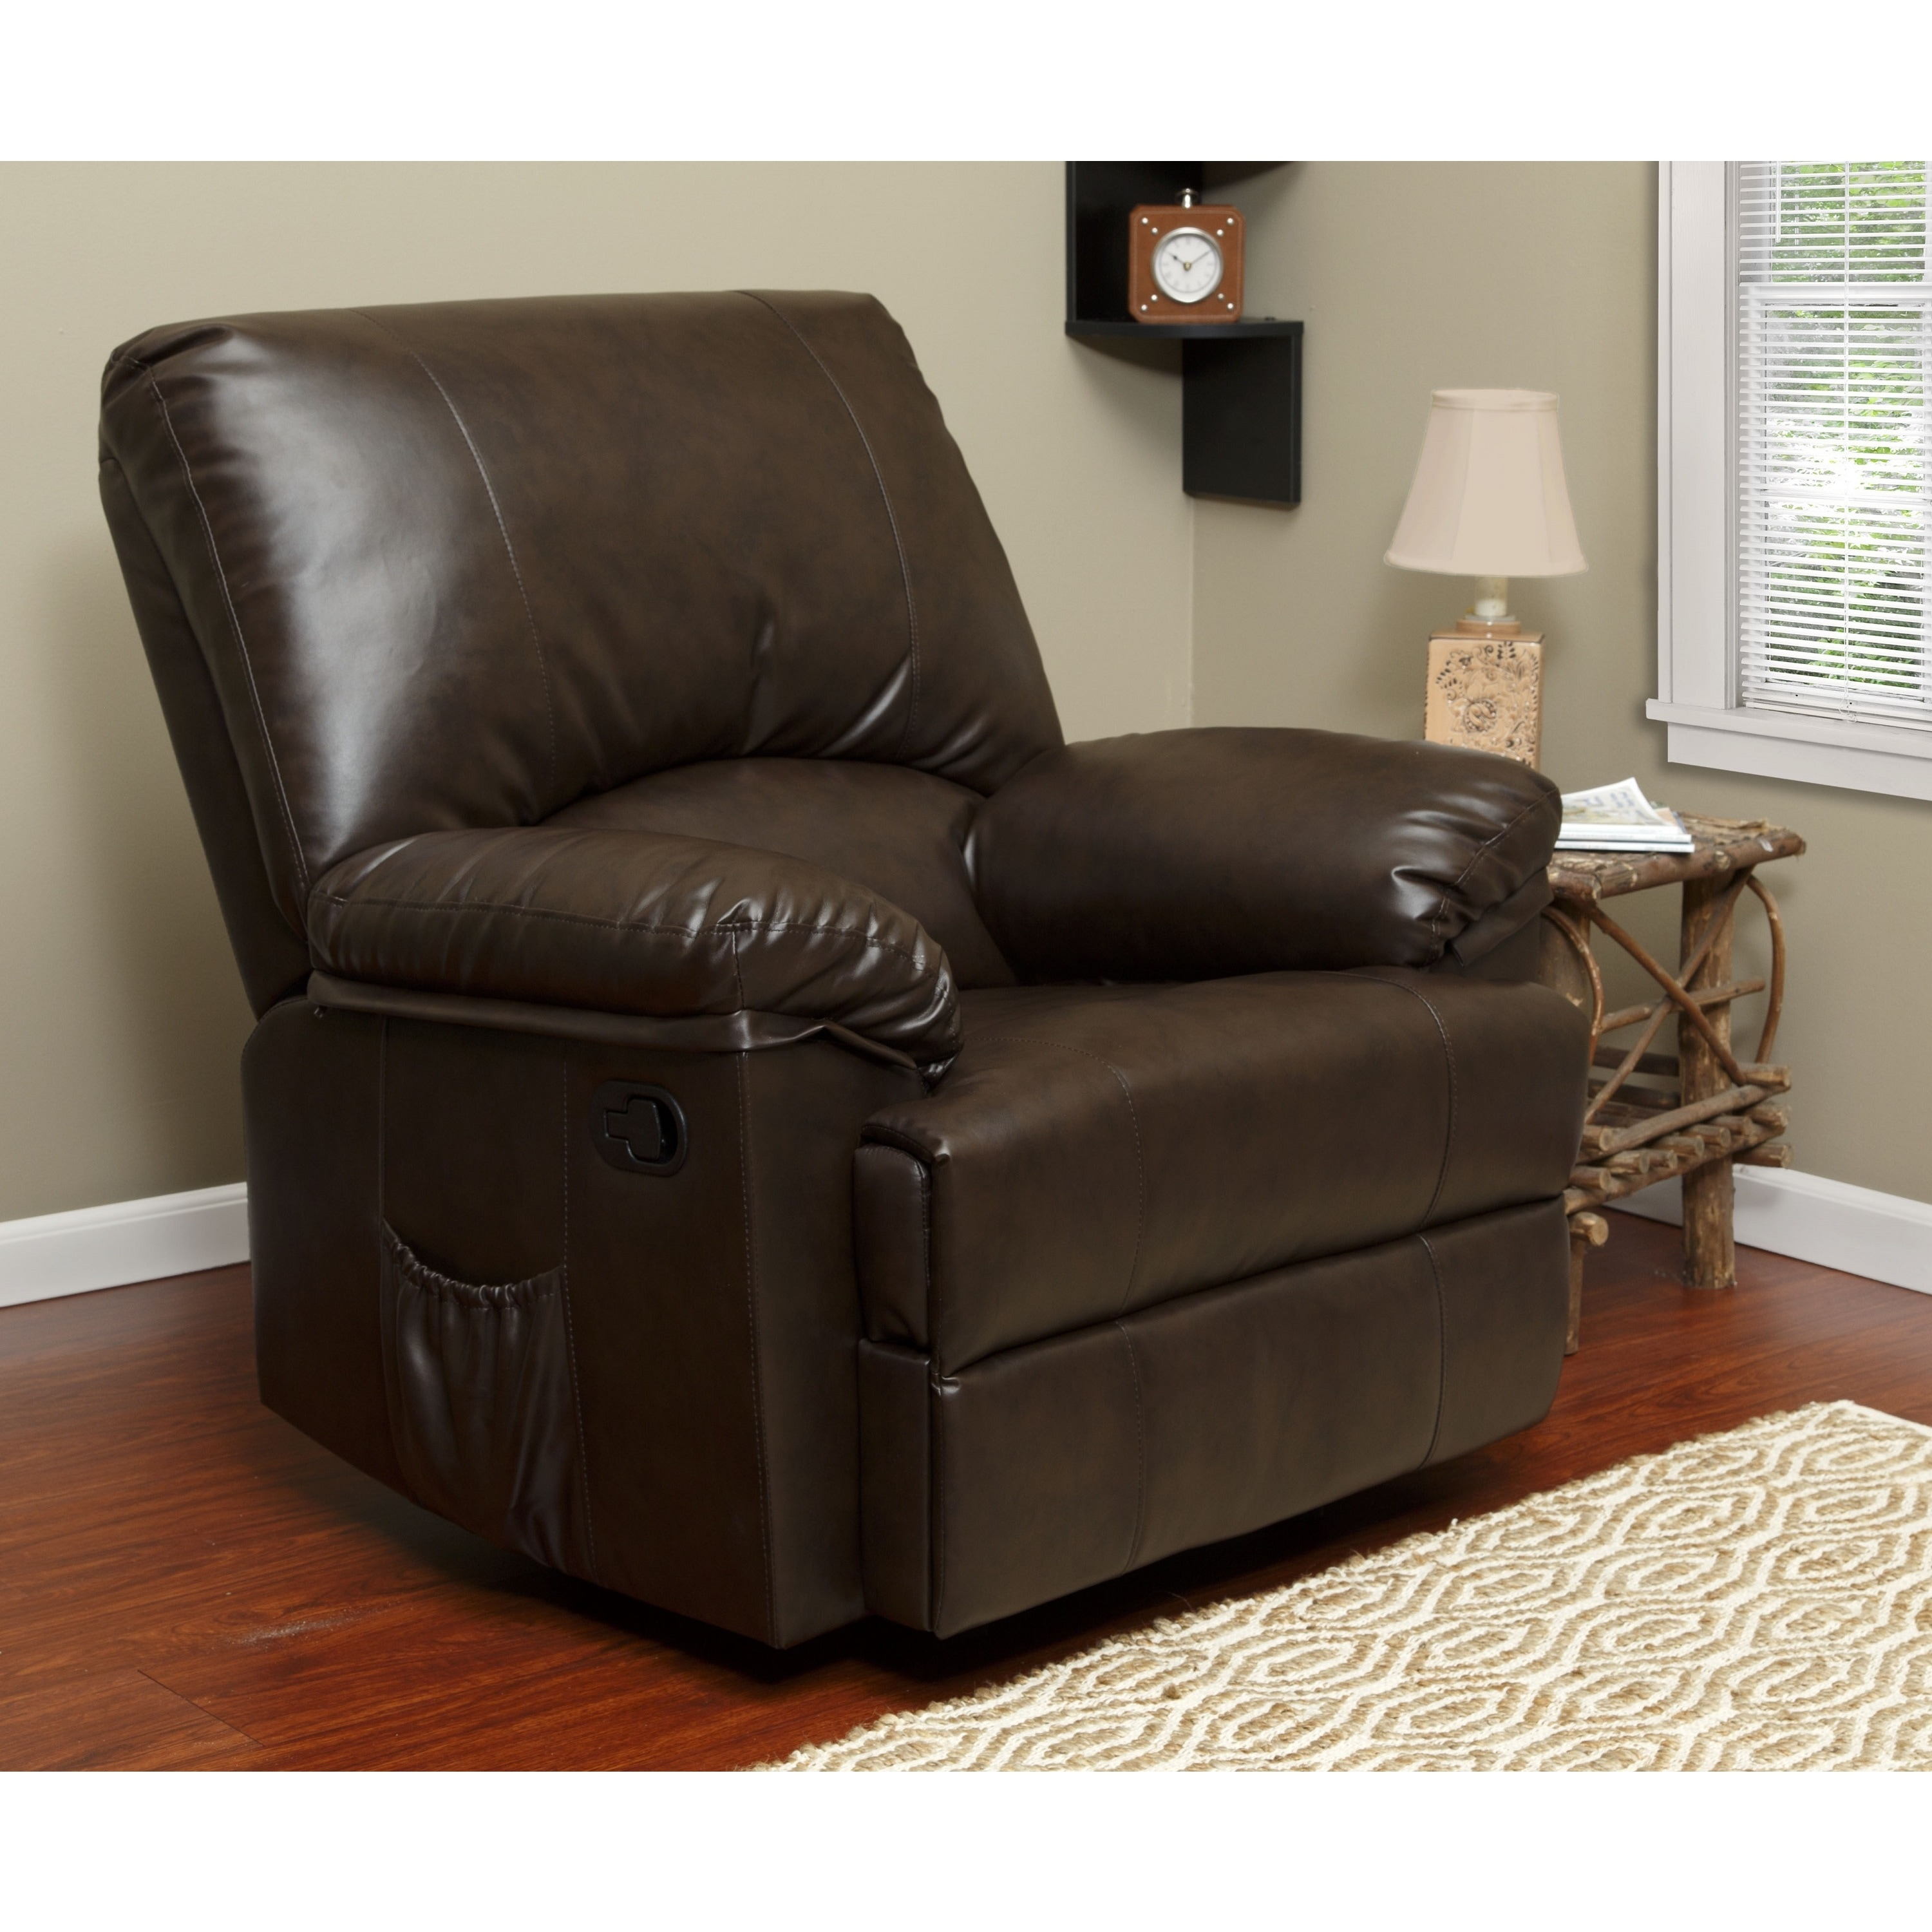 Brown Marbled Leather Relaxzen Rocker Recliner with Heat ...